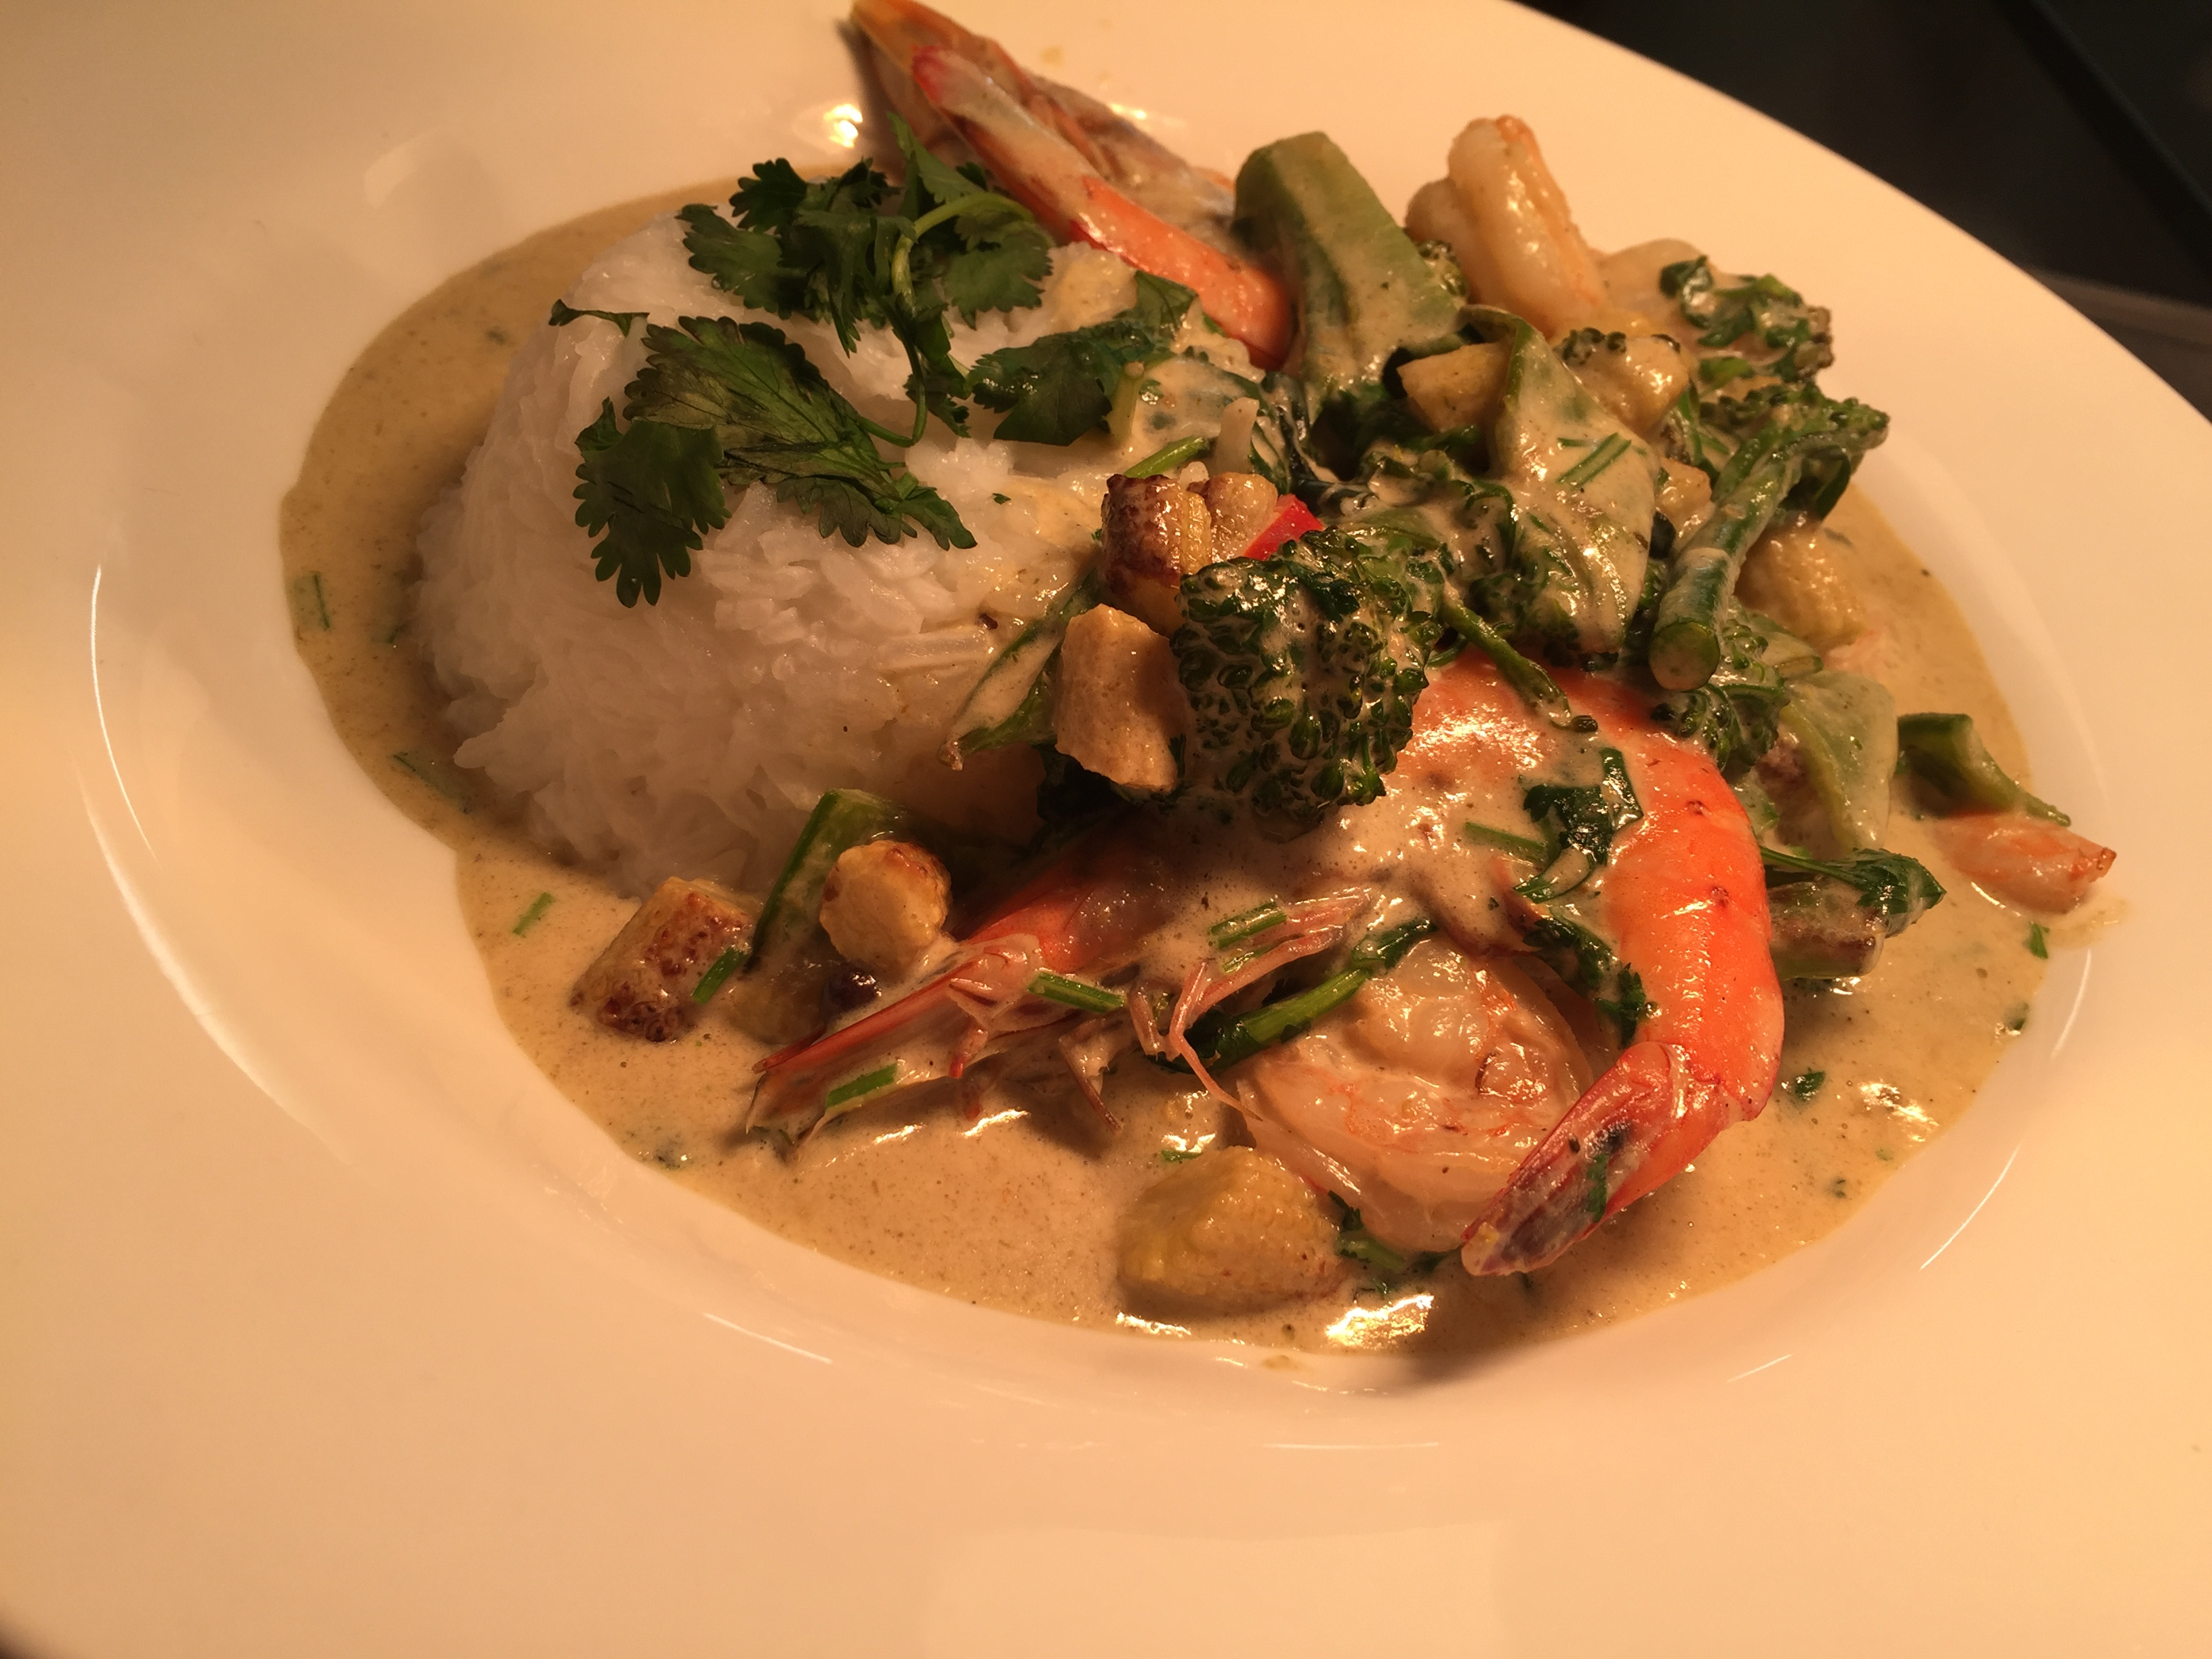 Green Thai King prawn curry